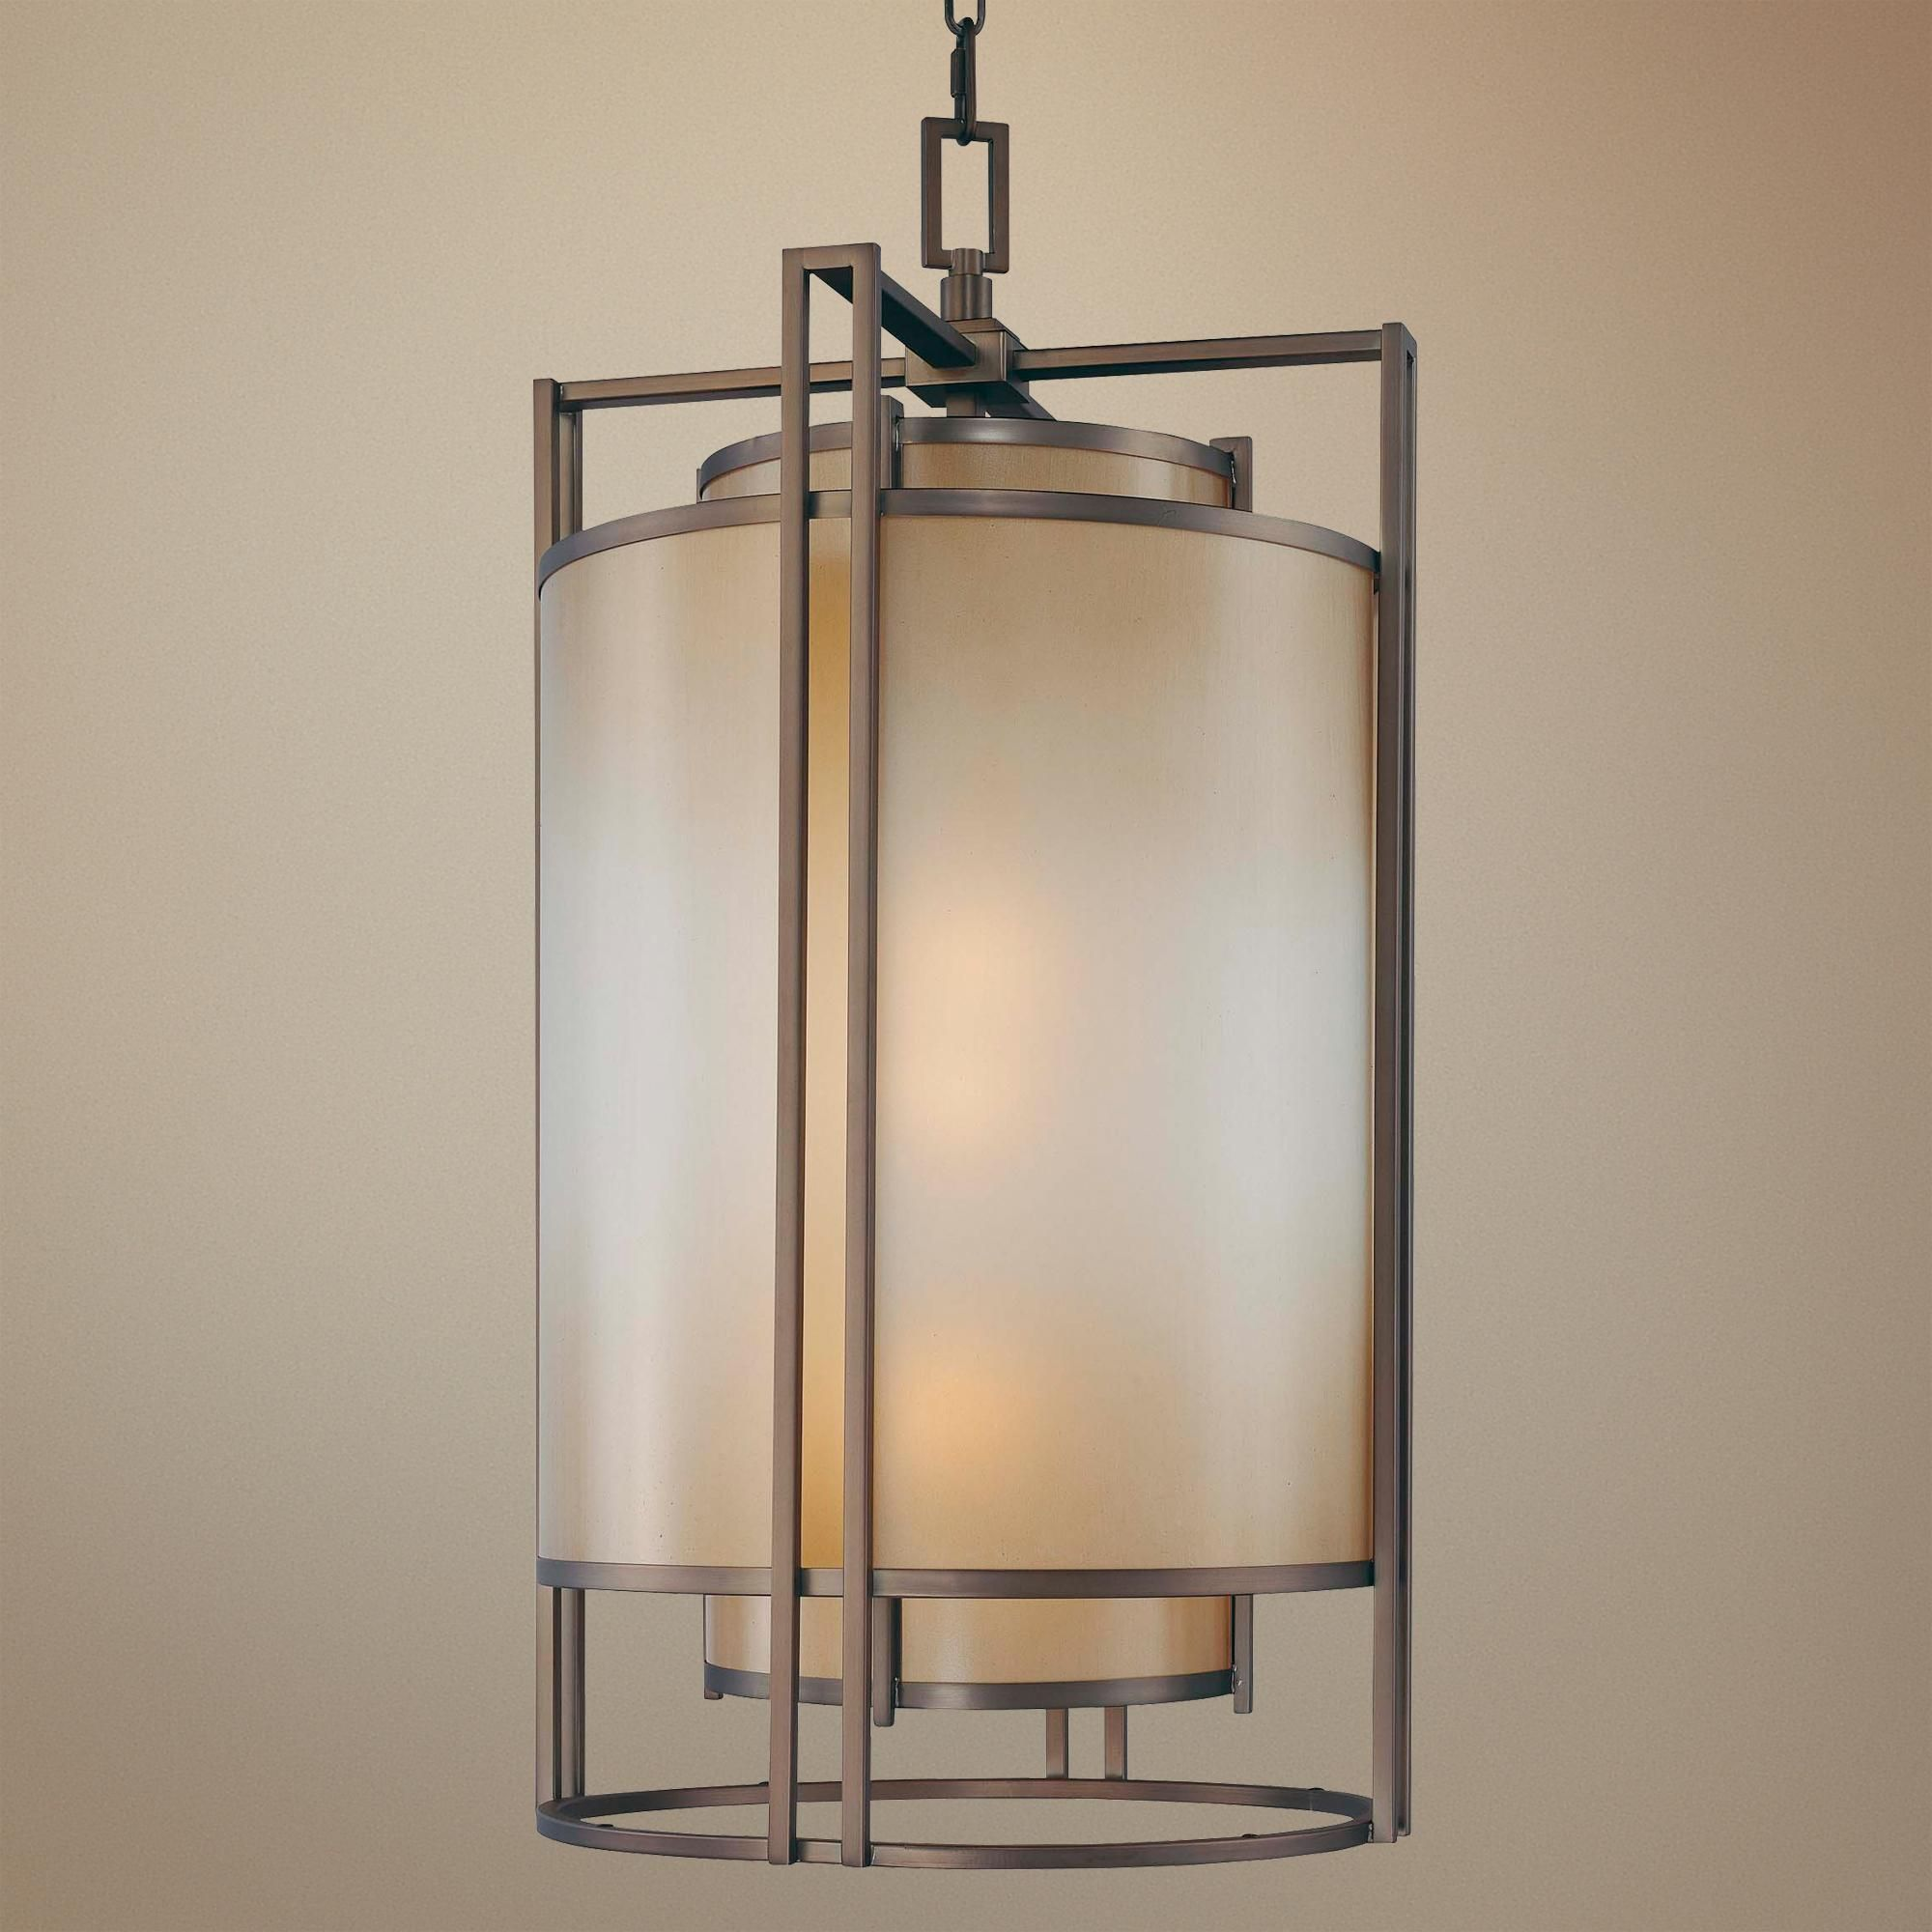 Walt Disney Signature Underscore 20 Quot Wide Pendant Light